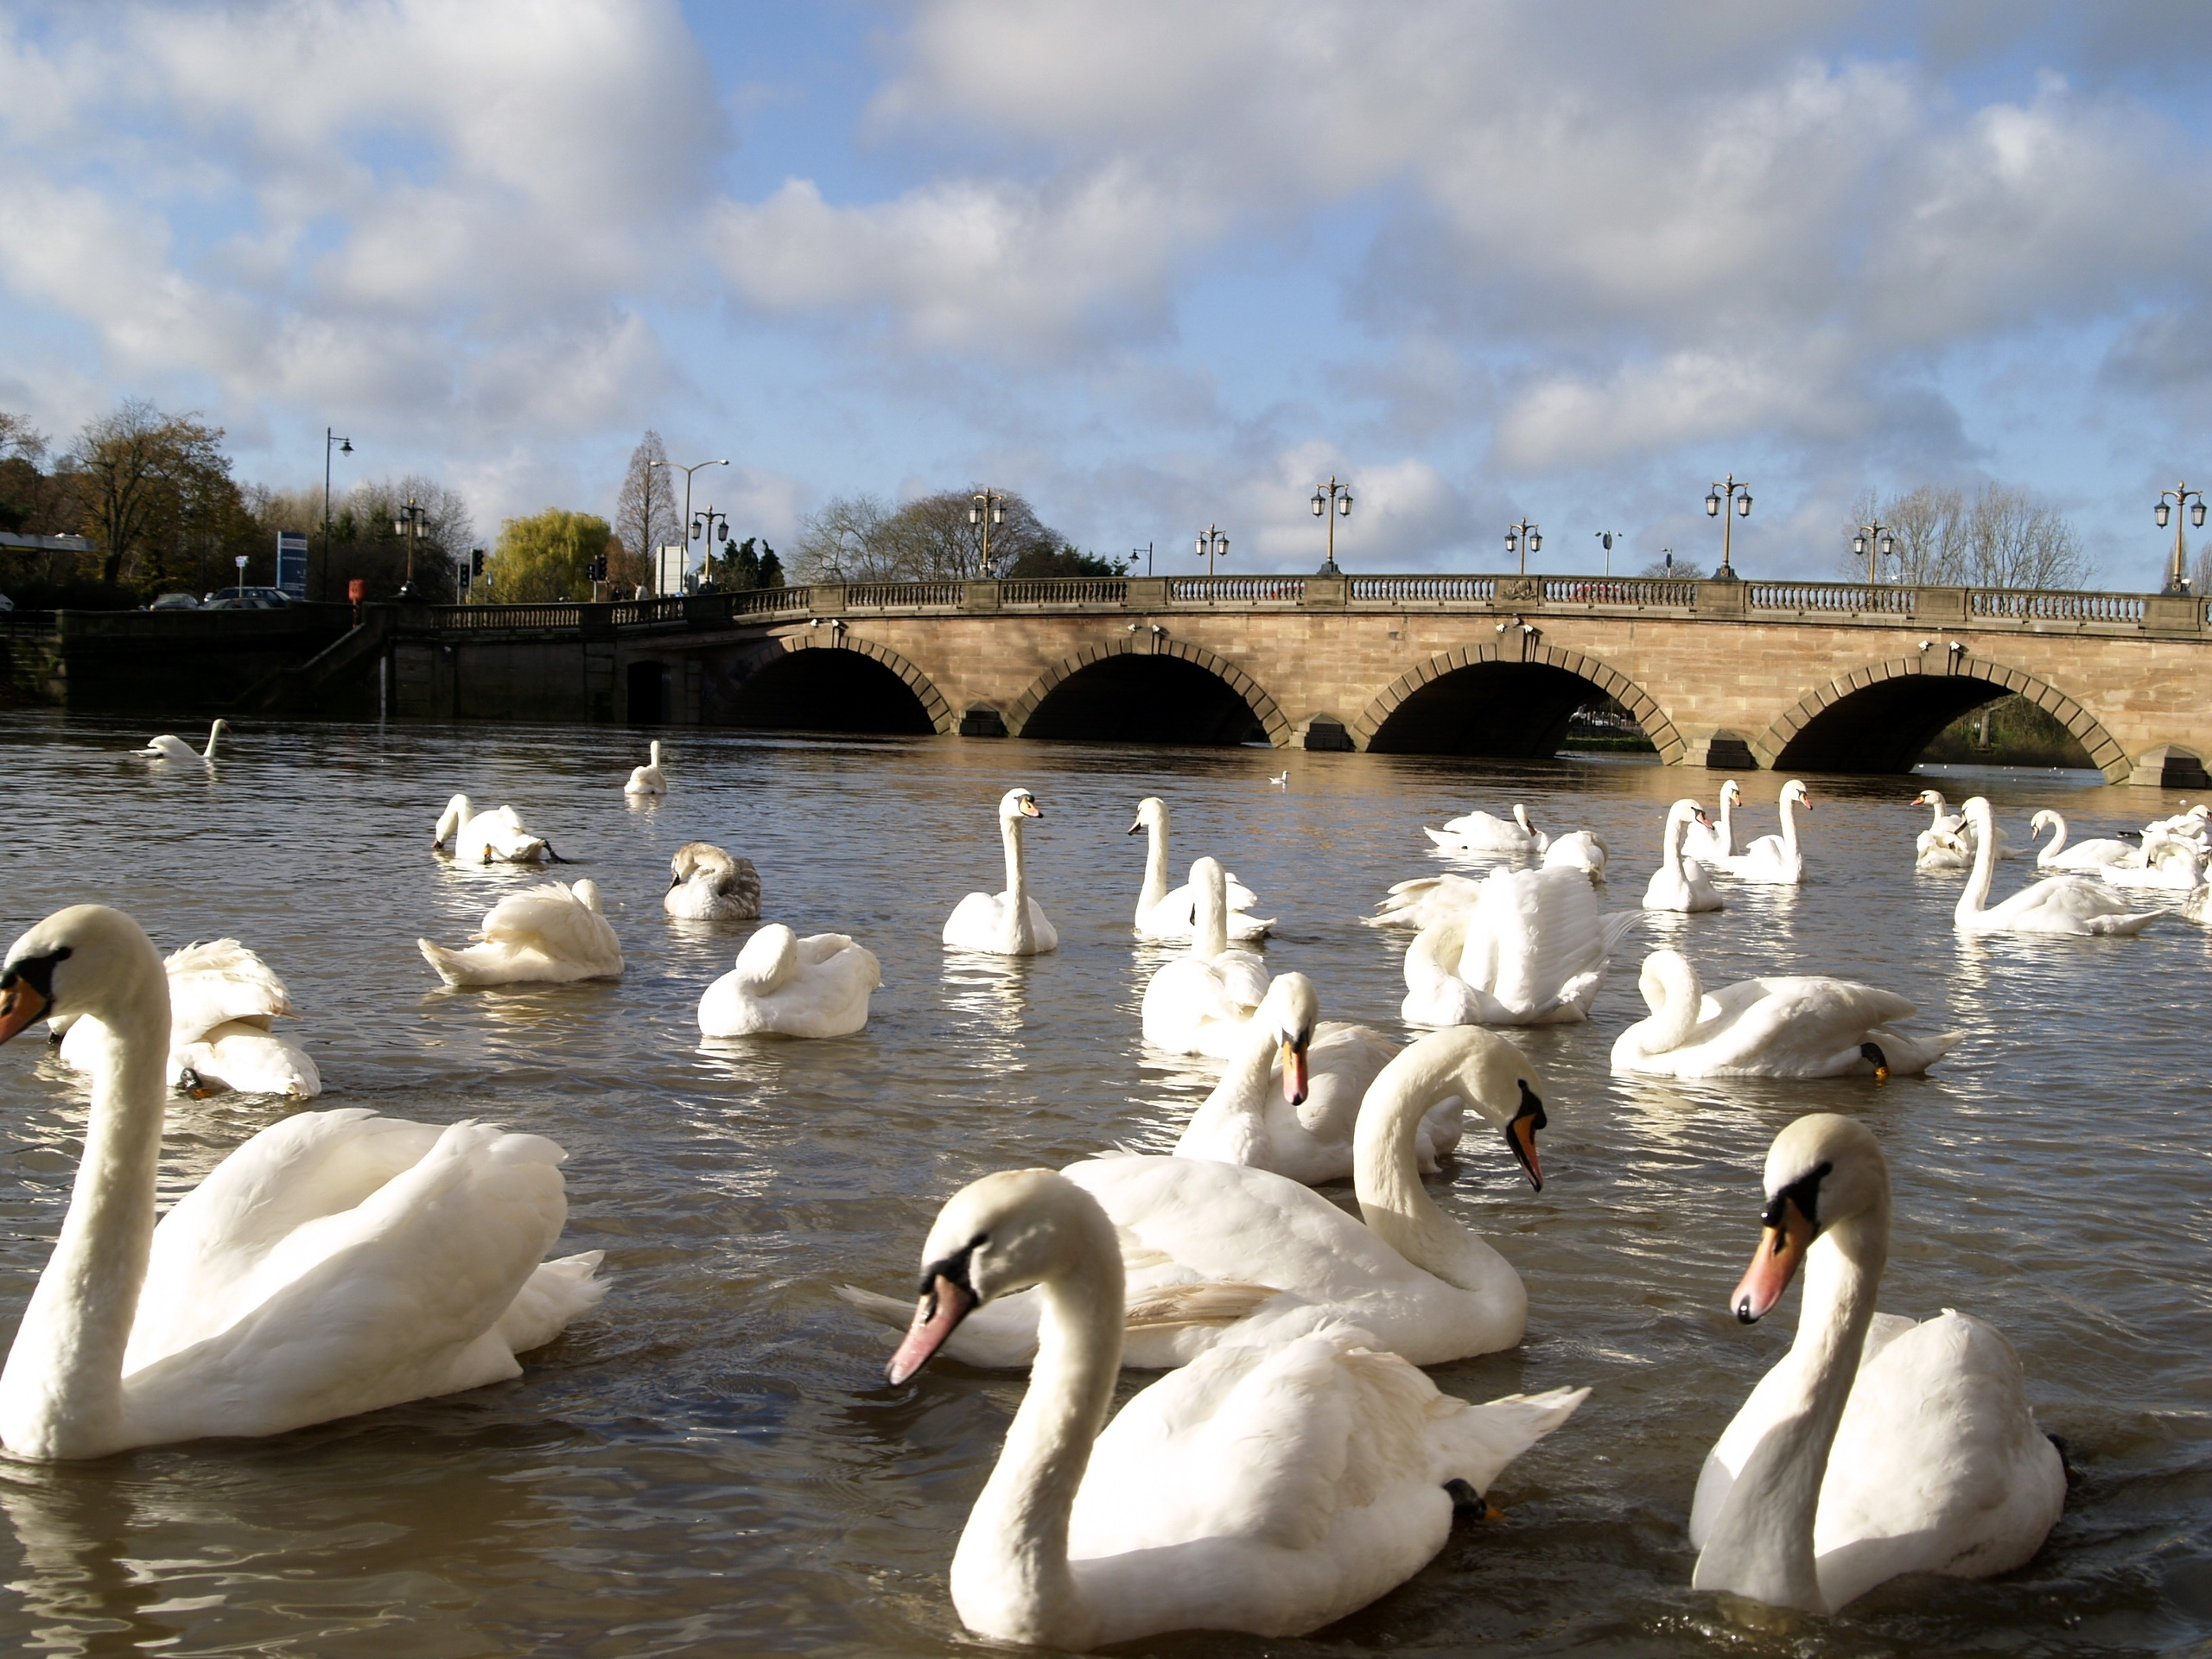 77552 download wallpaper Animals, Swans, Rivers, Bridge, Lots Of, Multitude screensavers and pictures for free